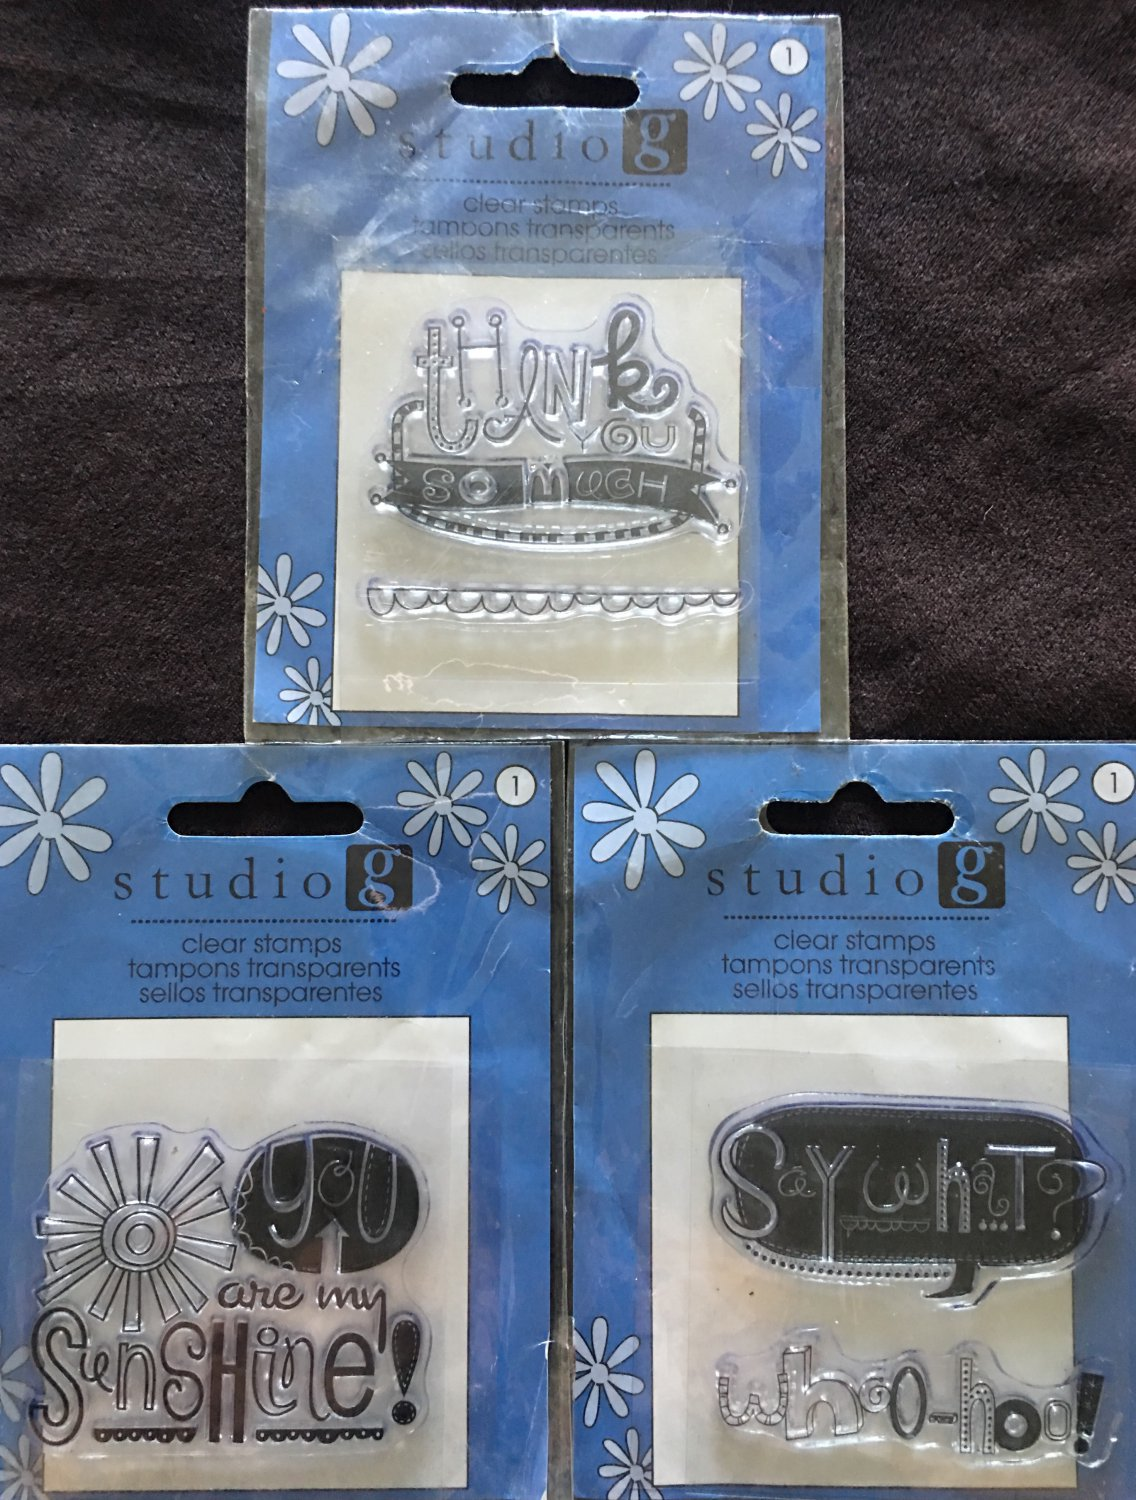 Studio G  Lot of 3 Clear Stamps pkgs - Thanks so much, Say What, You are my Sunshine